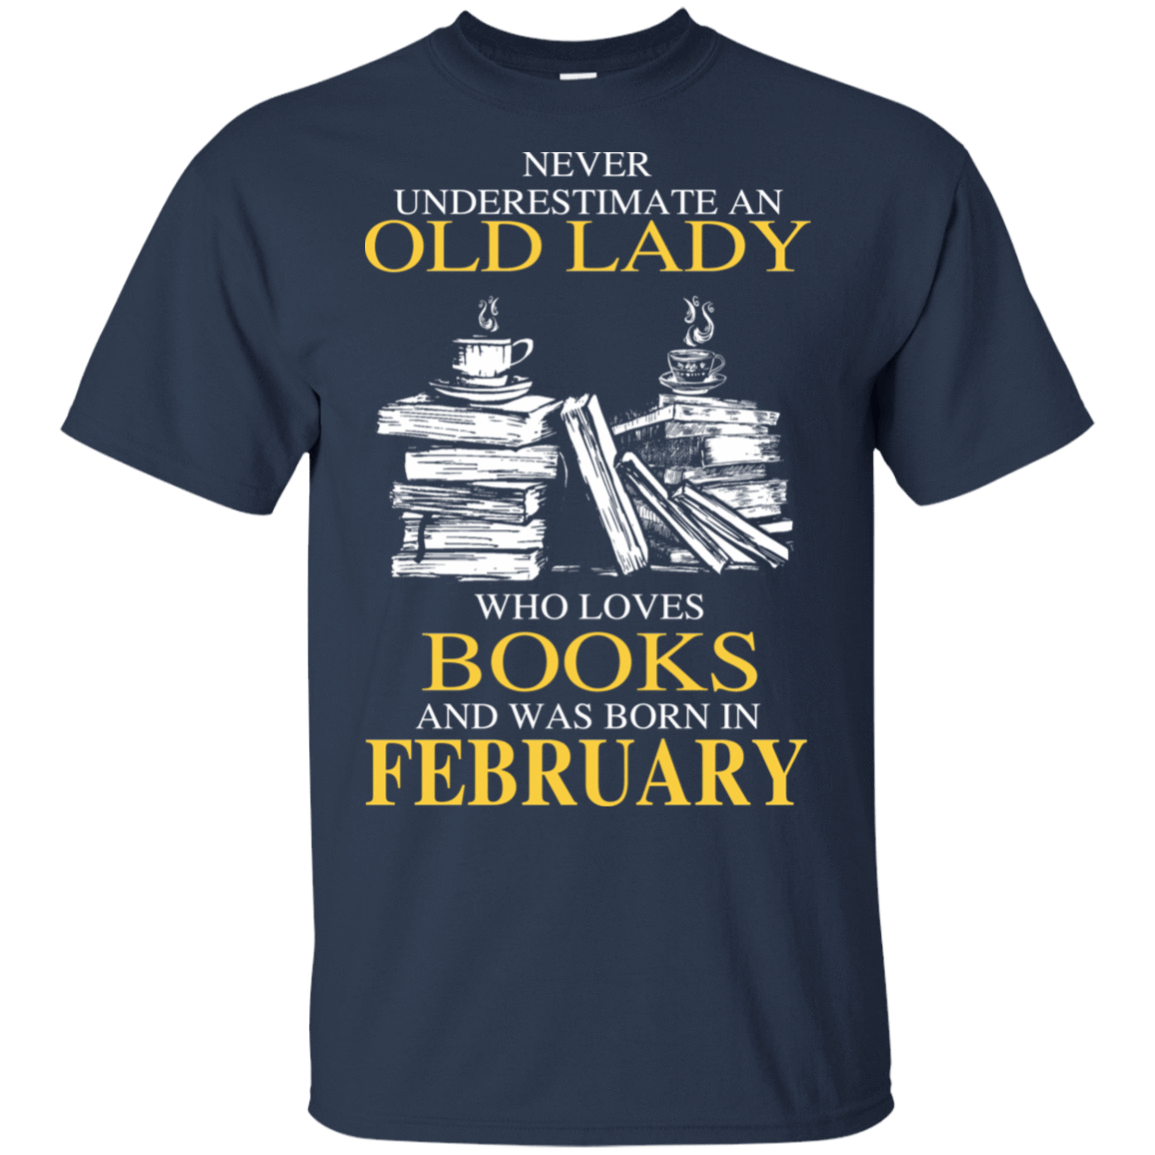 Never Underestimate An Old Lady Who Loves Books And Was Born In February T-Shirts, Hoodies 22-111-78318940-250 - Tee Ript